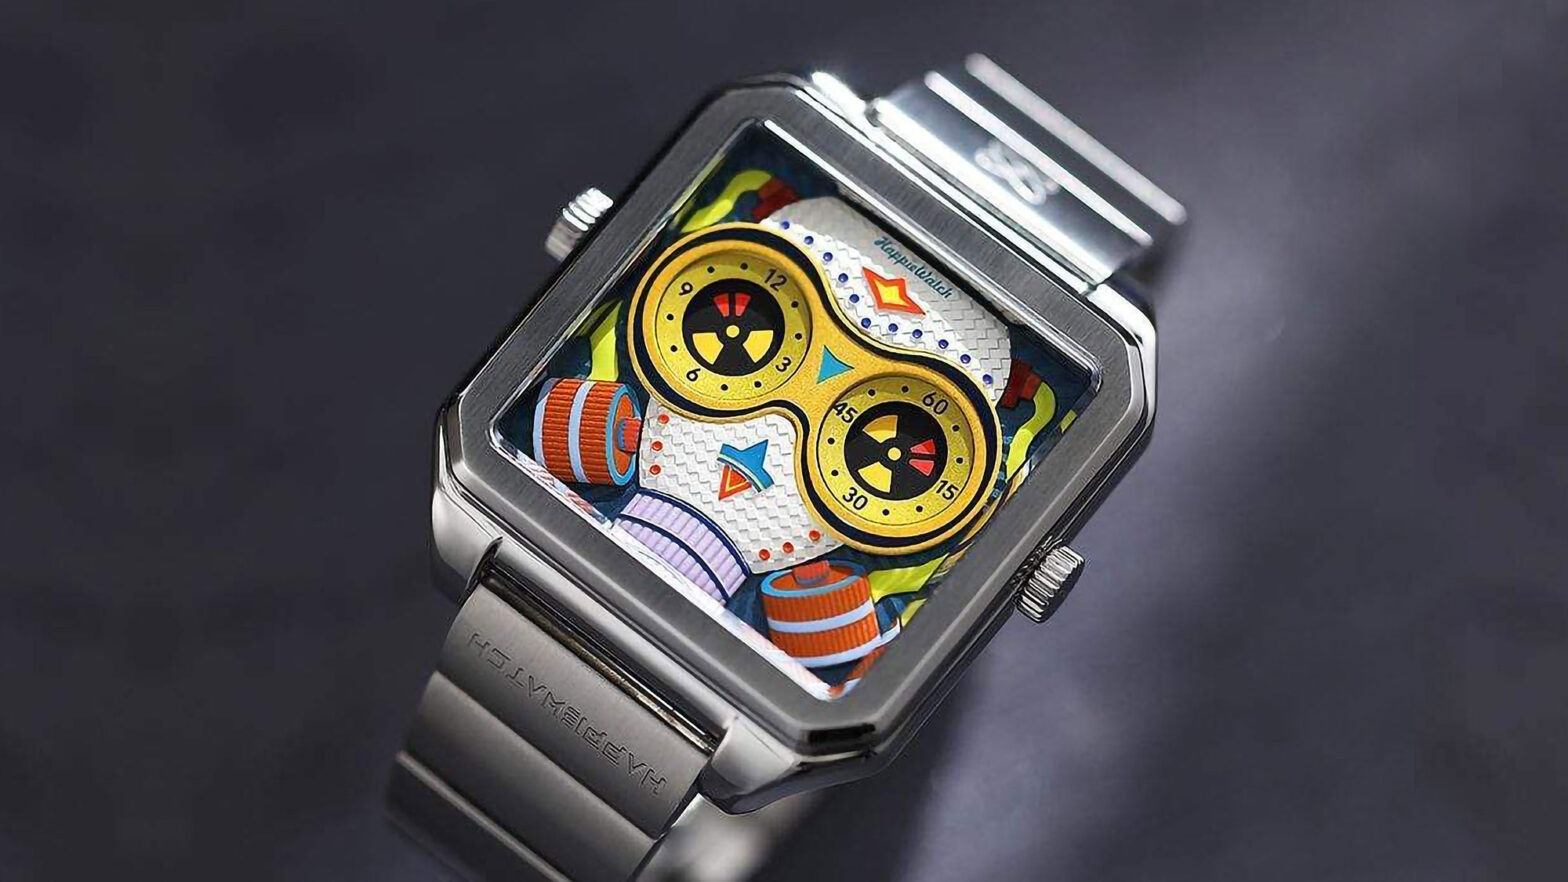 HappieWatch